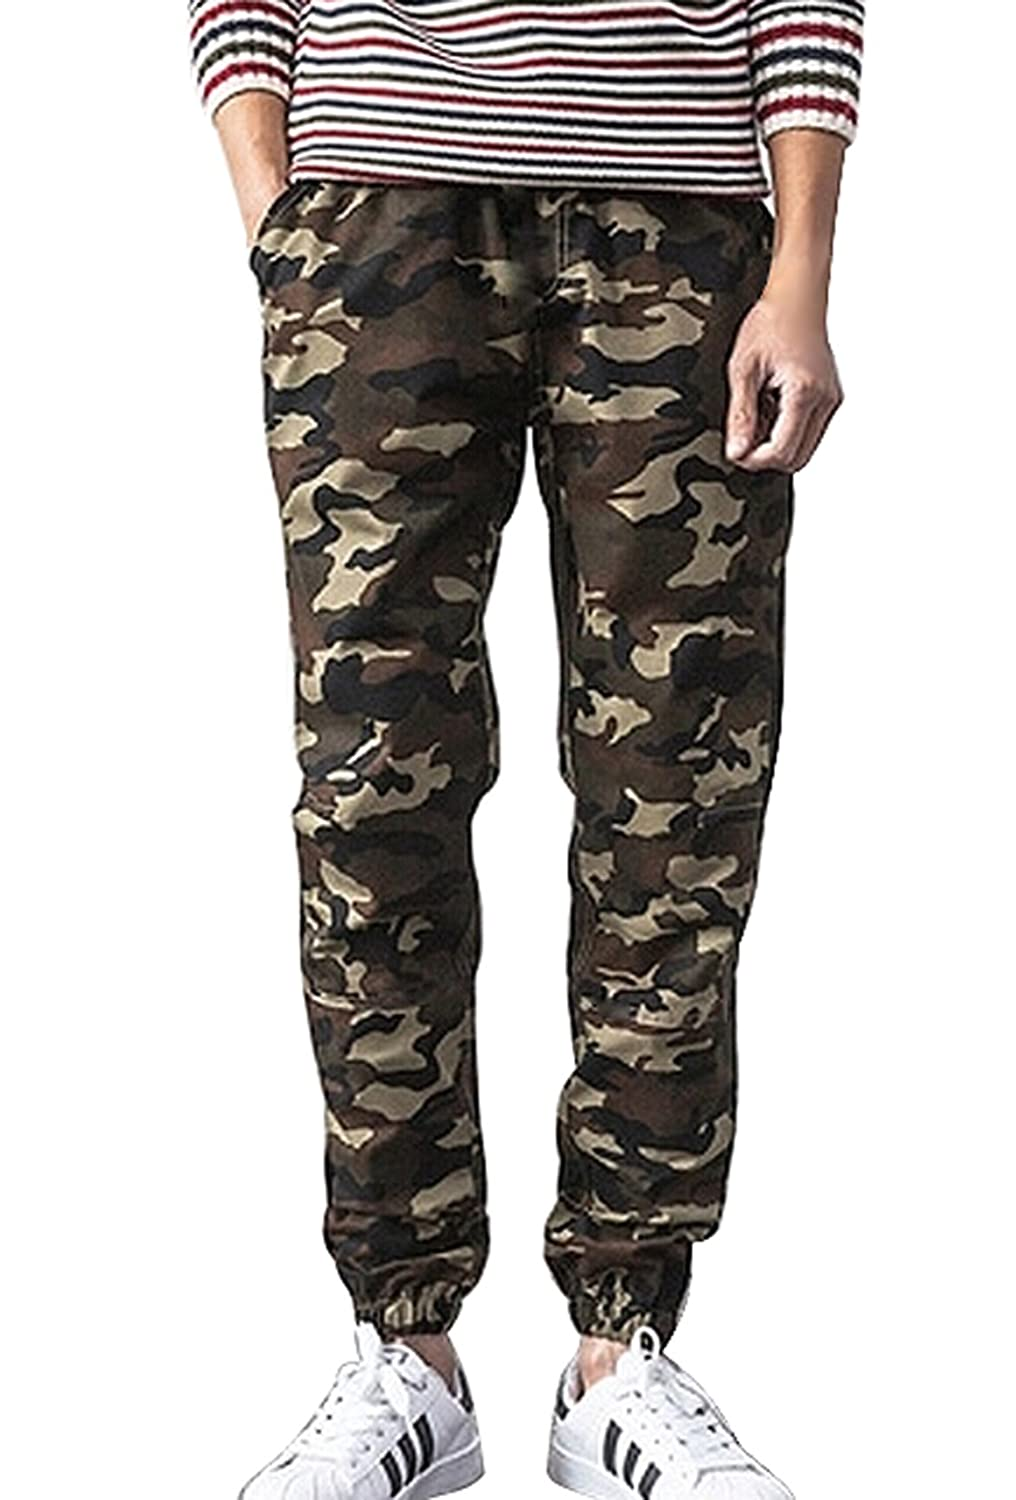 Muke Men's Classic Camouflage Cargo Pants Military Army Style Casual Trouser